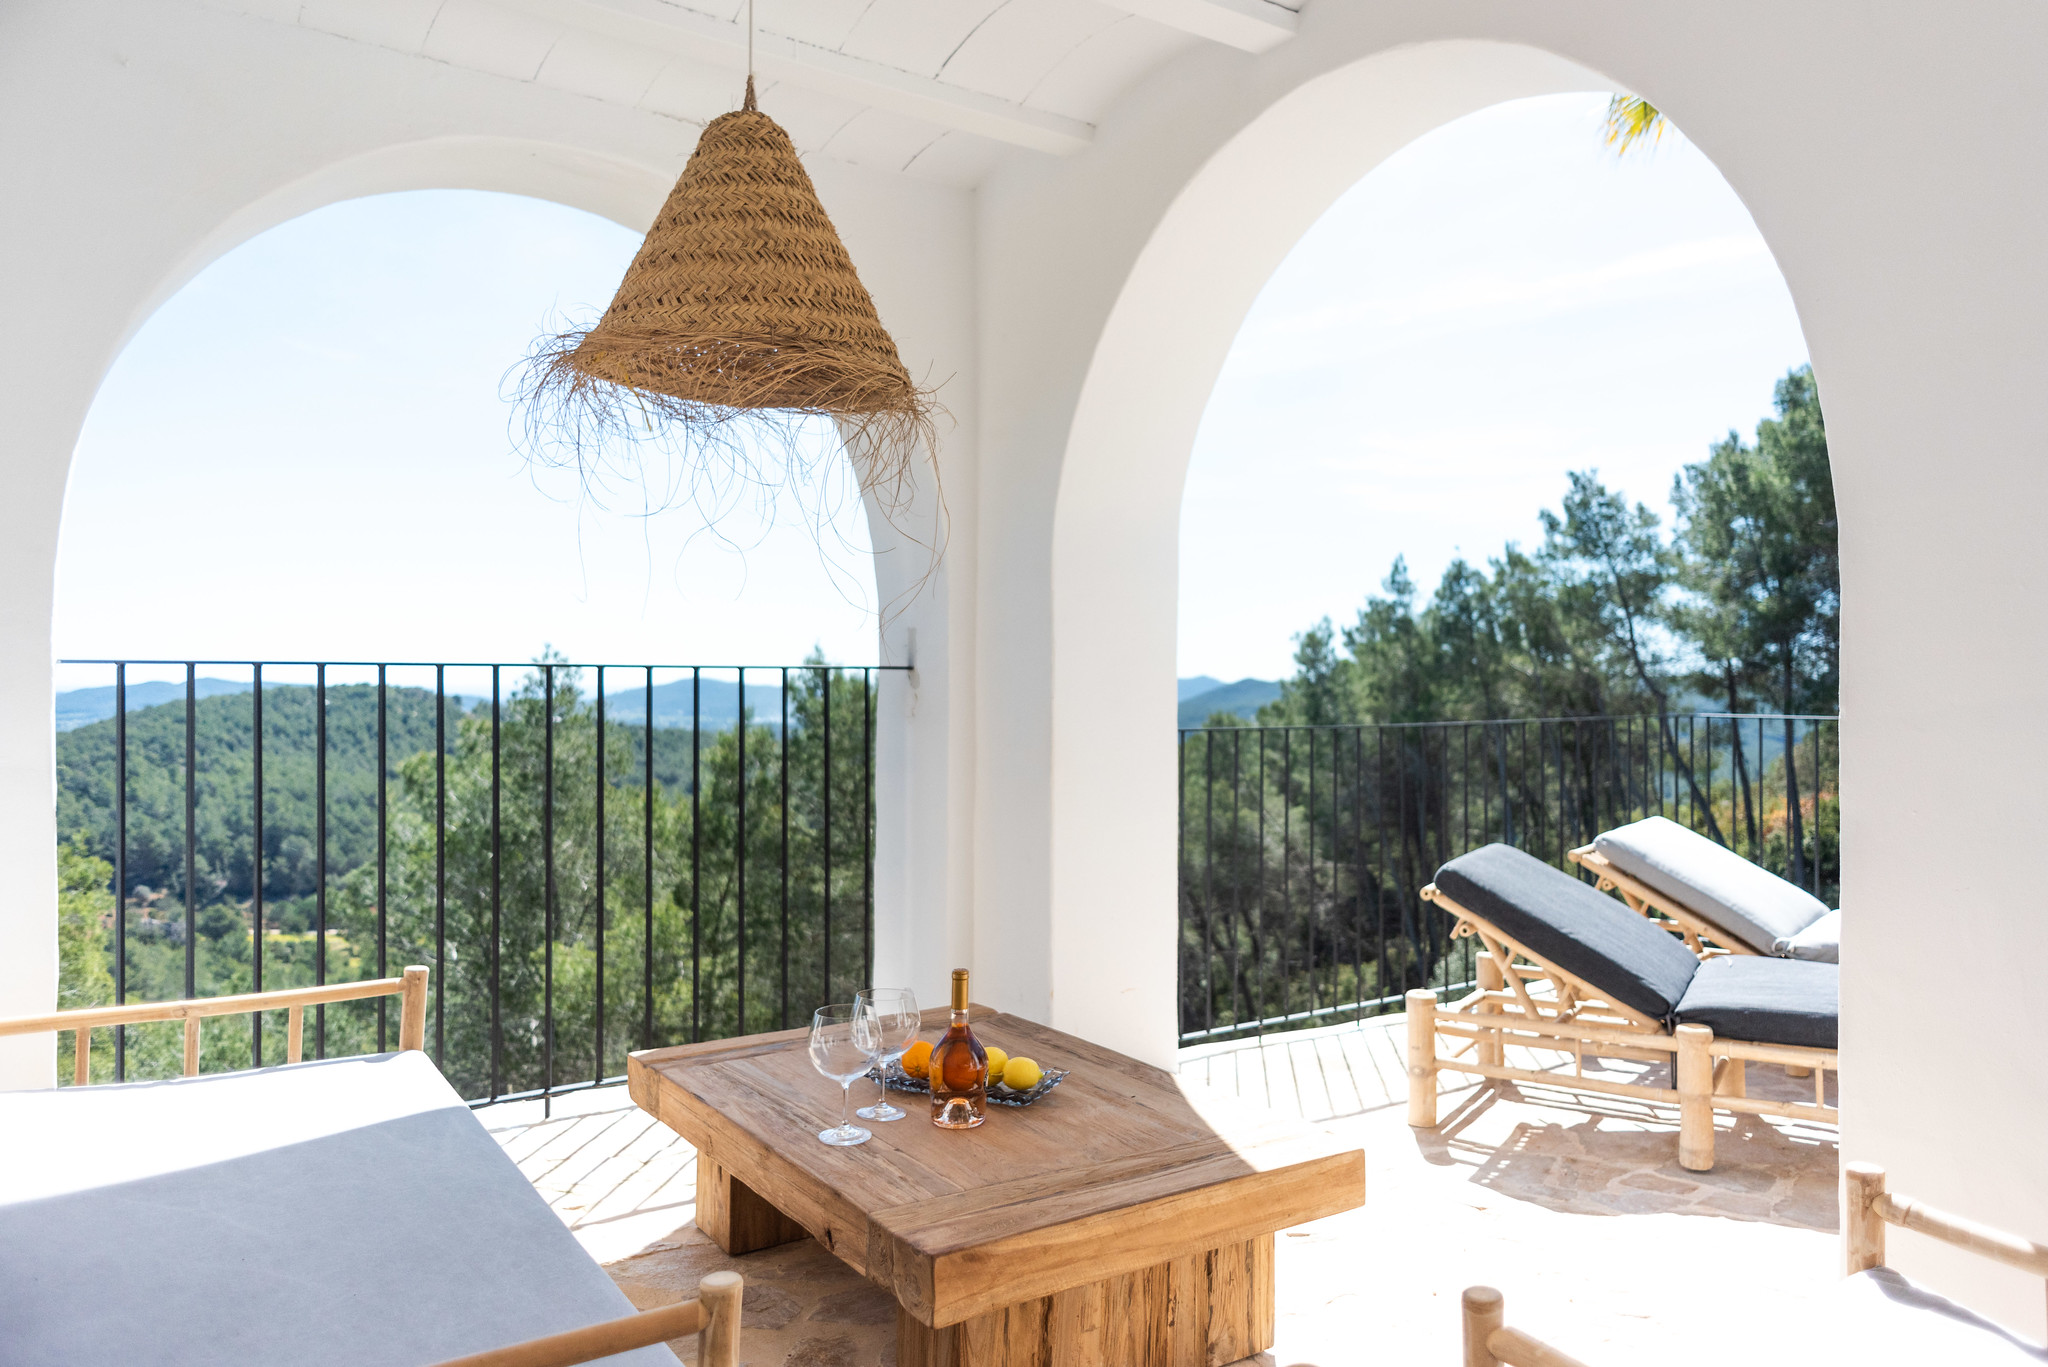 https://www.white-ibiza.com/wp-content/uploads/2020/05/white-ibiza-villas-can-cactus-terrace-seating.jpg